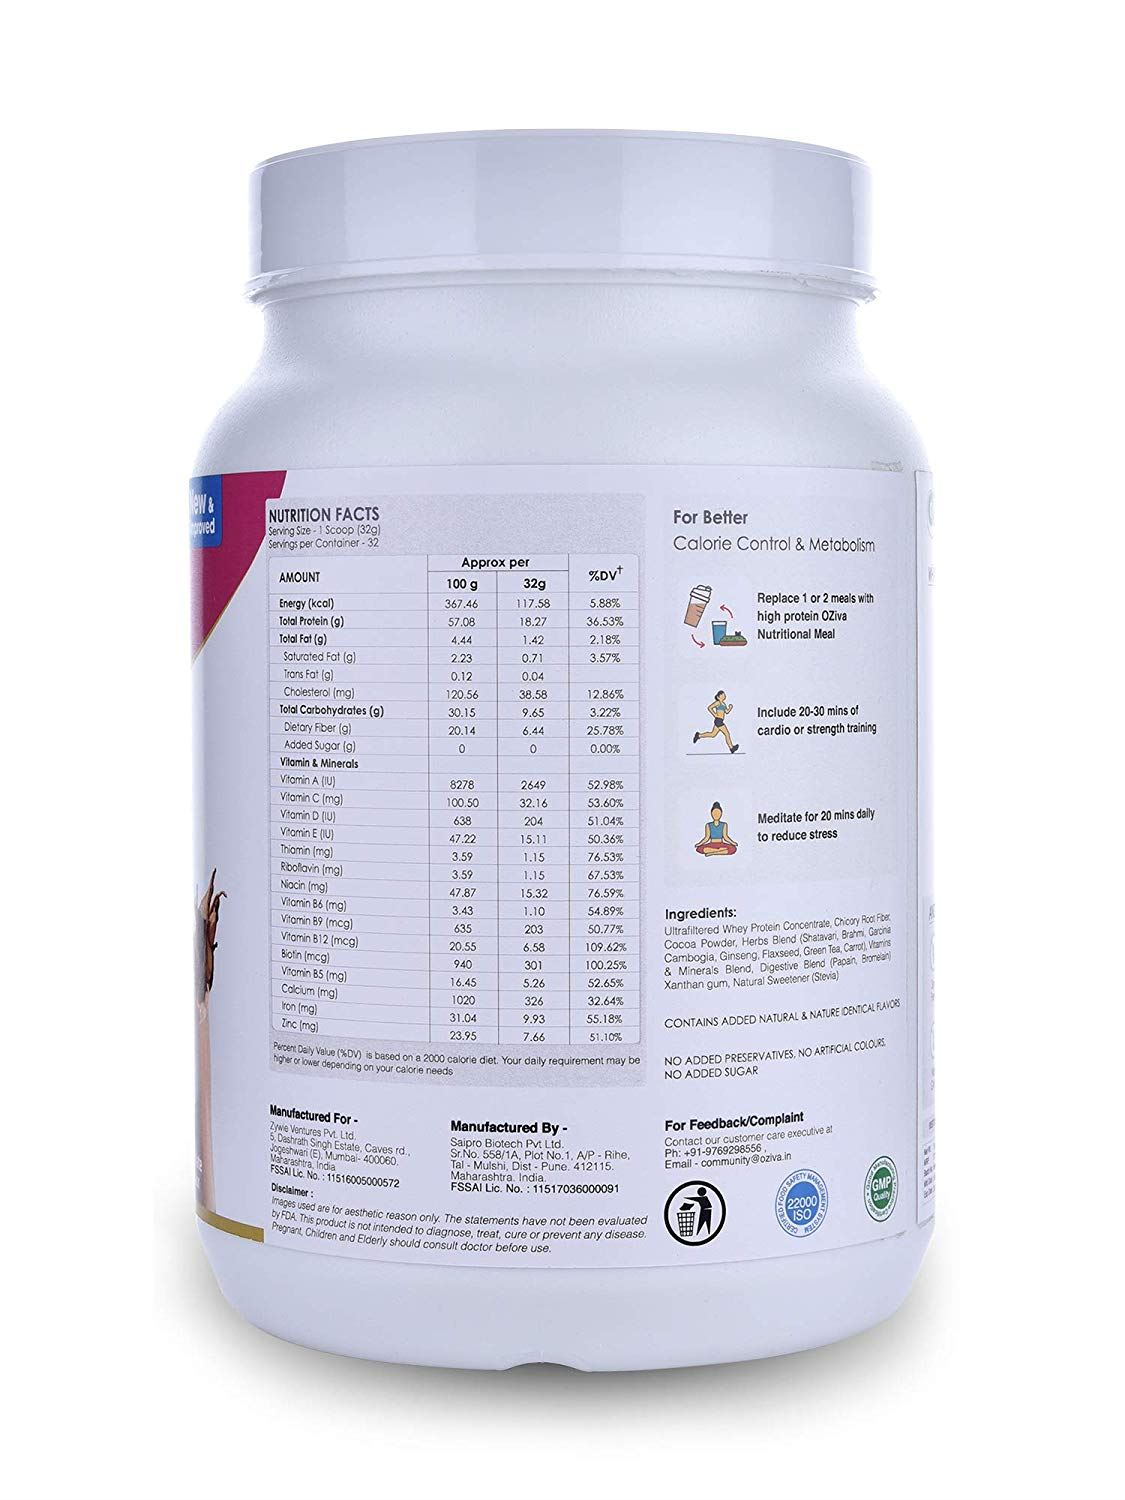 Picture of OZiva Nutritional Meal Shake Women, High Protein Meal Replacement, Chocolate 2.2 Lbs